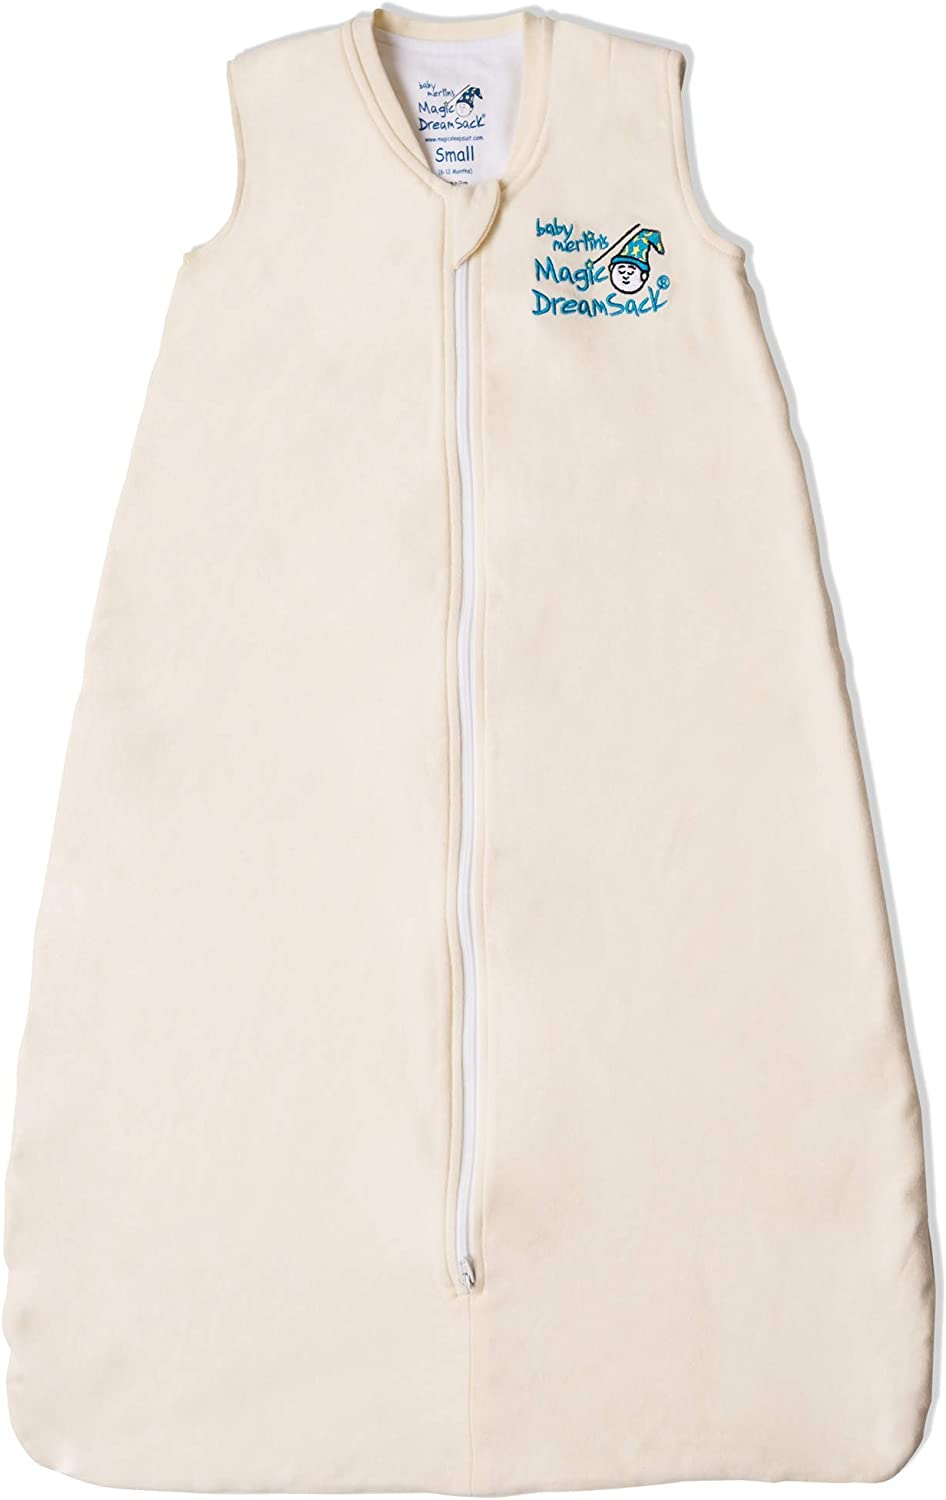 Baby Merlin's Magic DreamSack - Double Layer Wearable Blanket - Cotton - Cream 6-12 Months